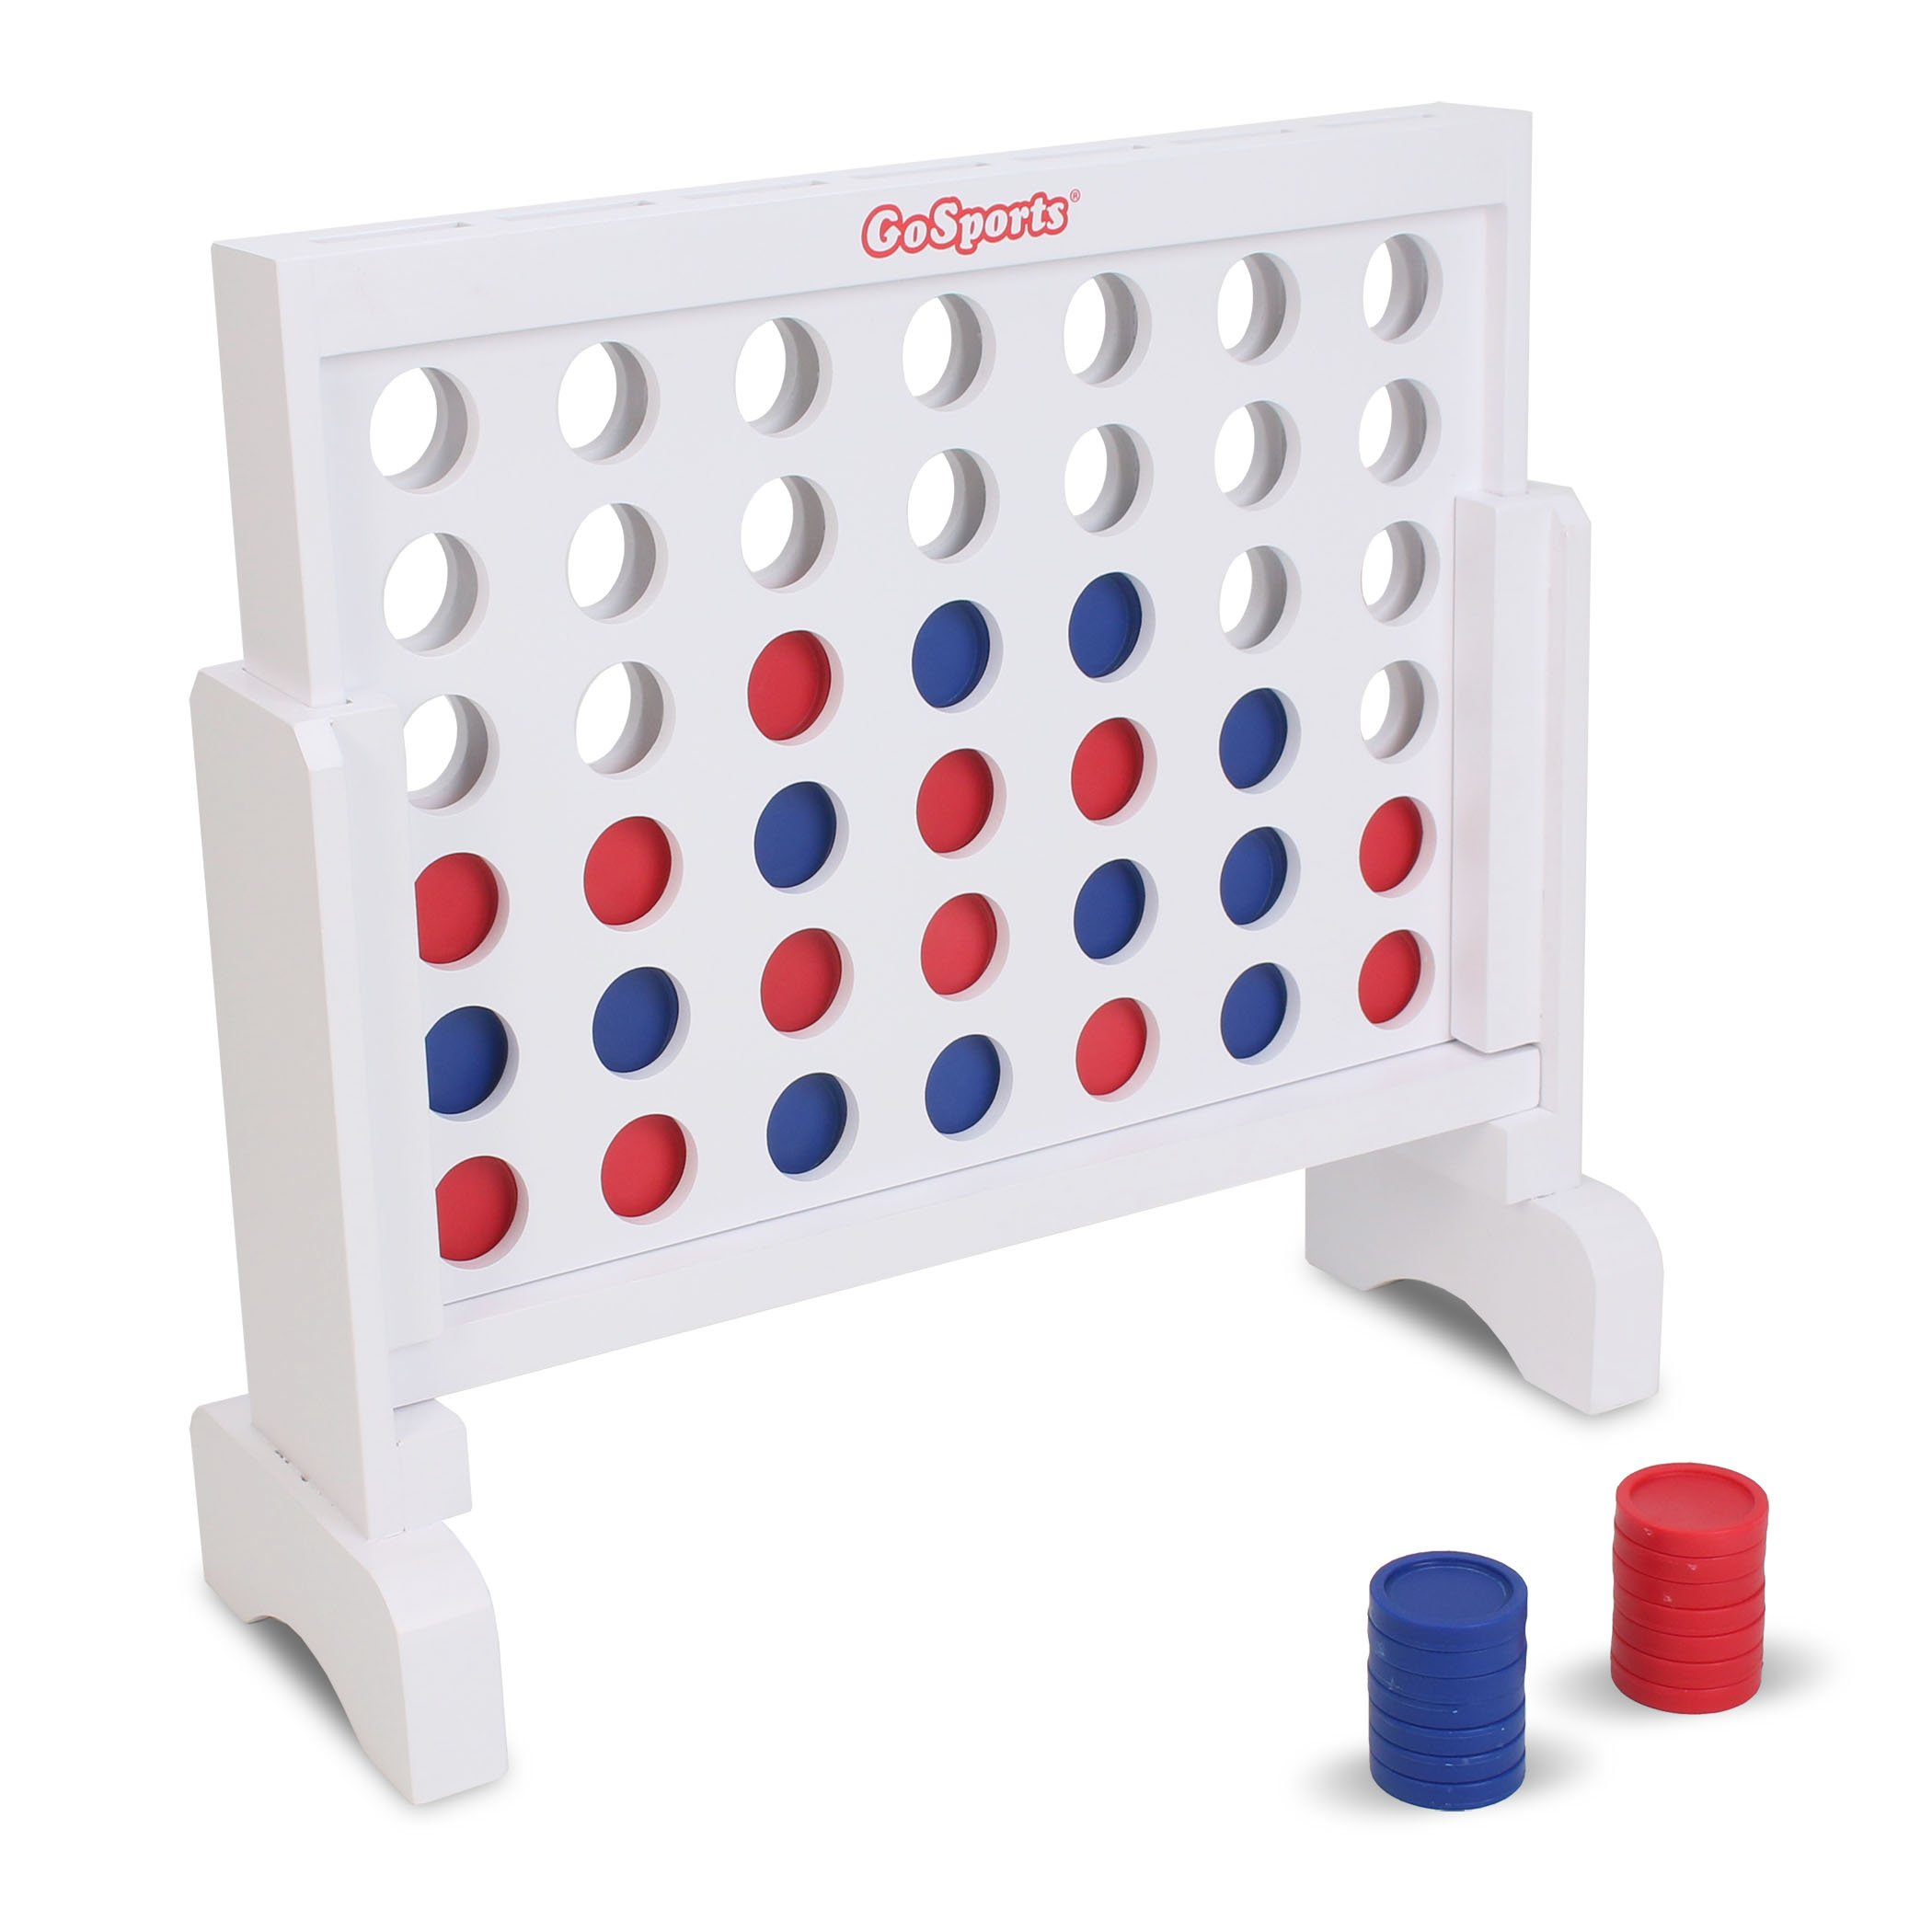 GoSports Premium Wooden 4 in a Row Game - 1 foot Width - With Coins, Portable Case and Rules